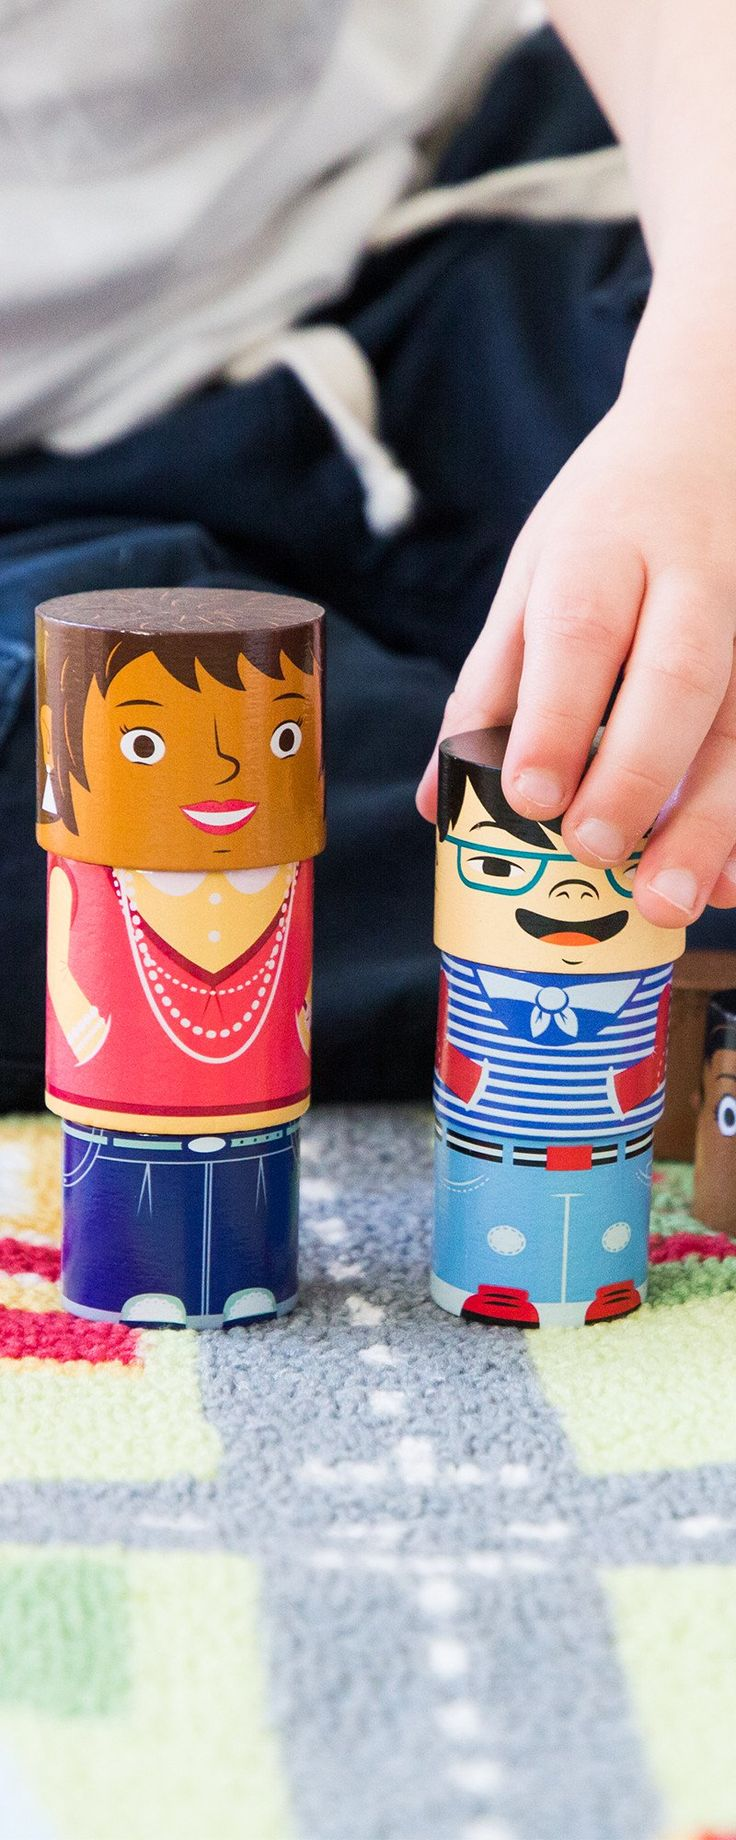 Not every family looks alike and these interchangeable dolls let kids stack up little people that represent the world around them. Discovered by The Grommet.